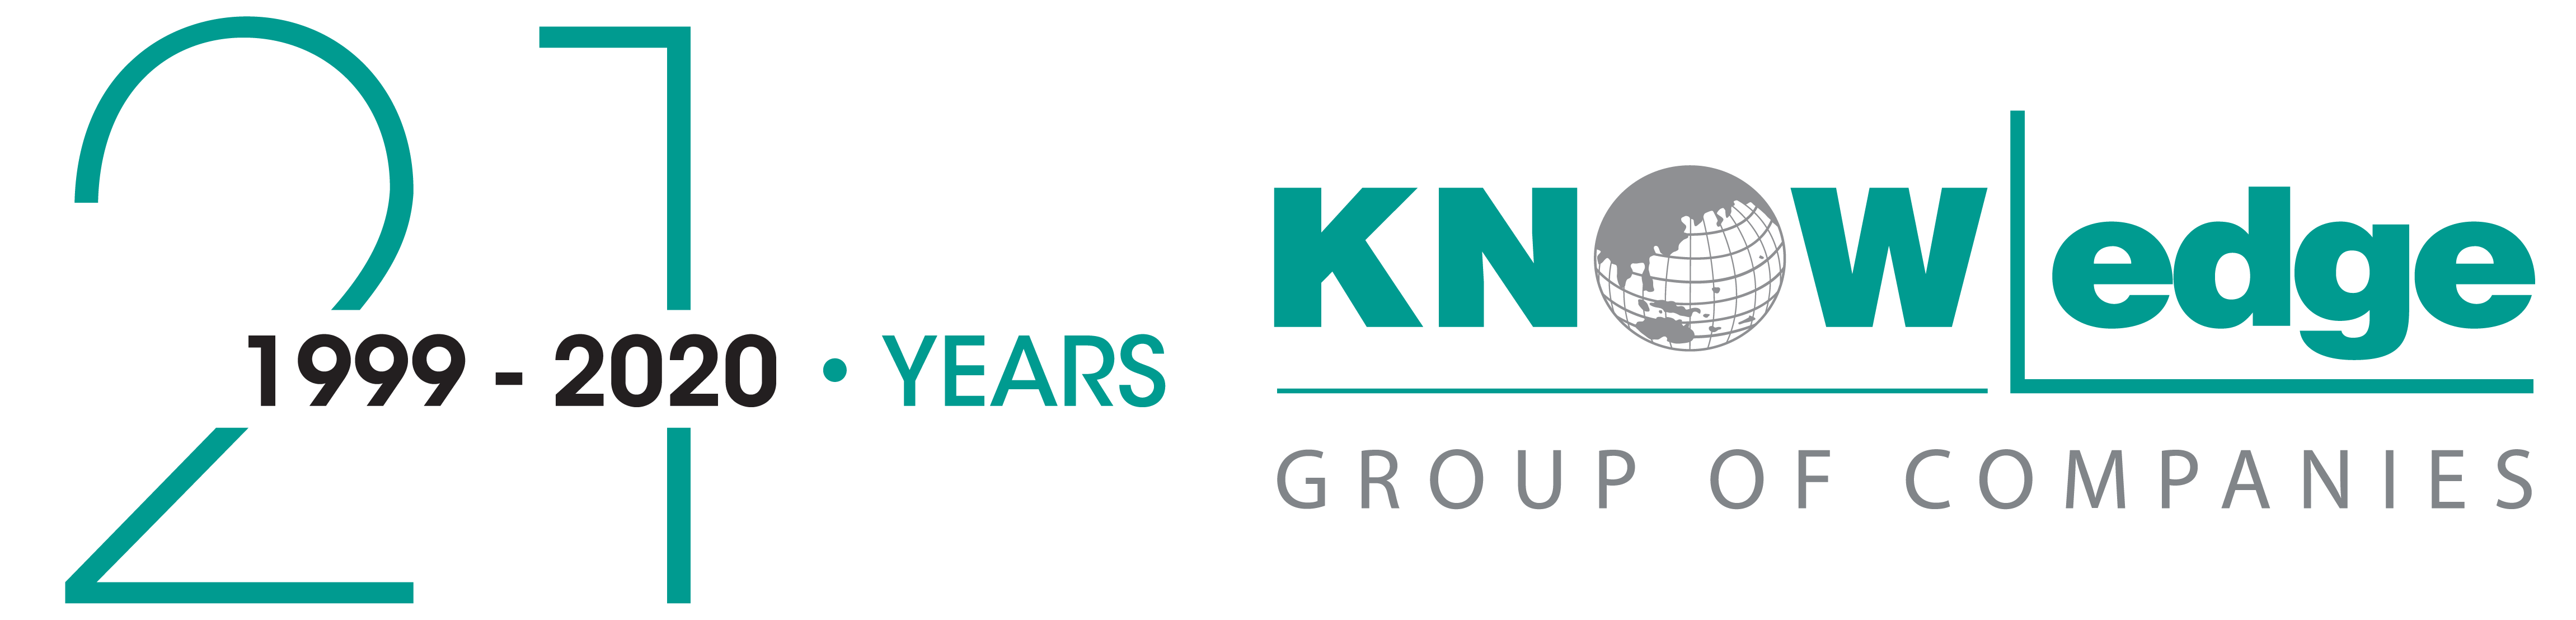 Knowledge Group of Companies